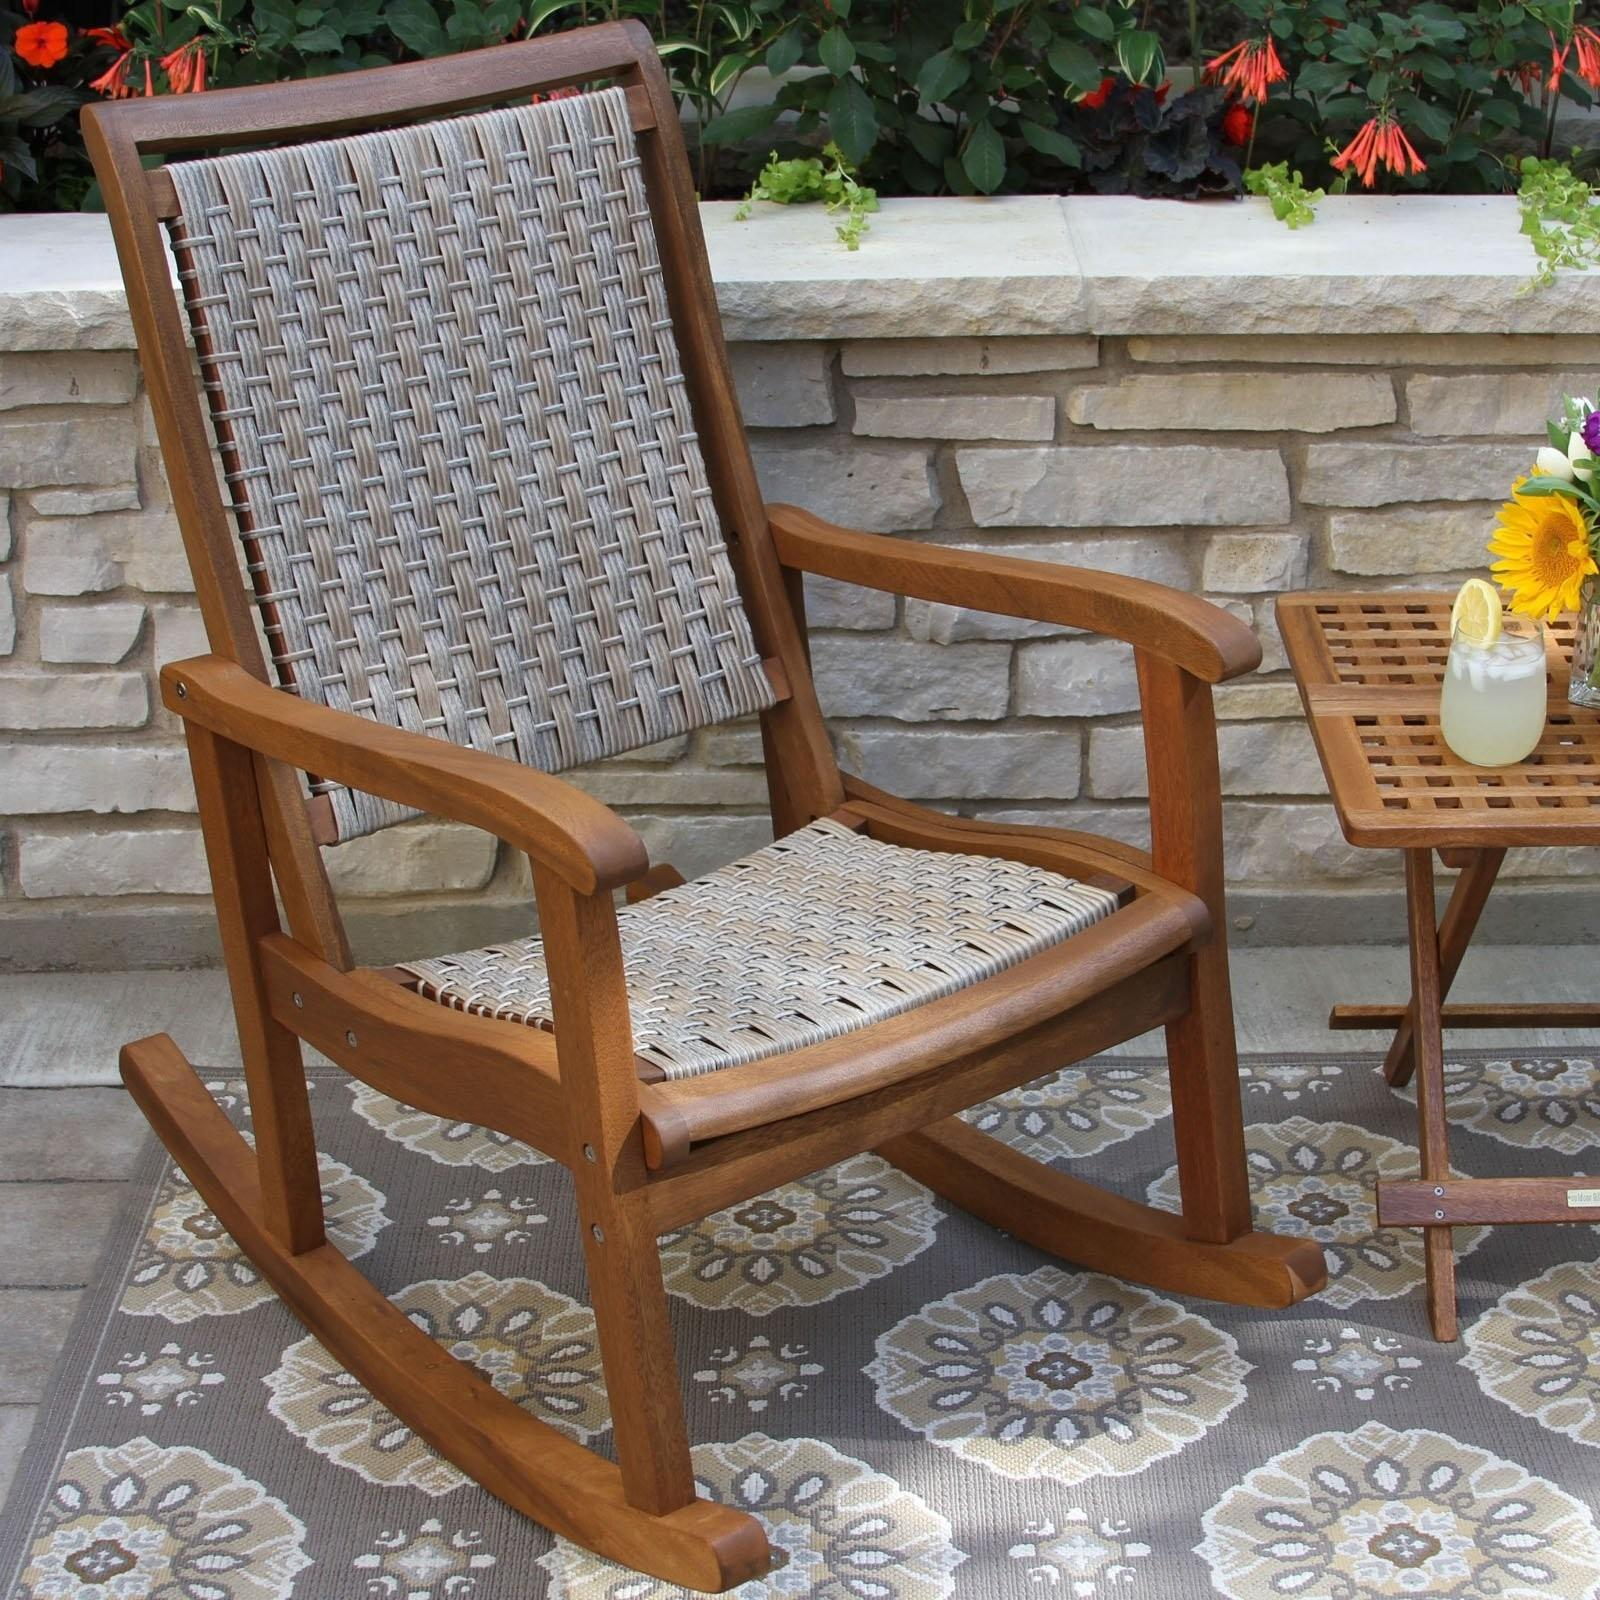 Polywood Jefferson Recycled Plastic Rocking Chair